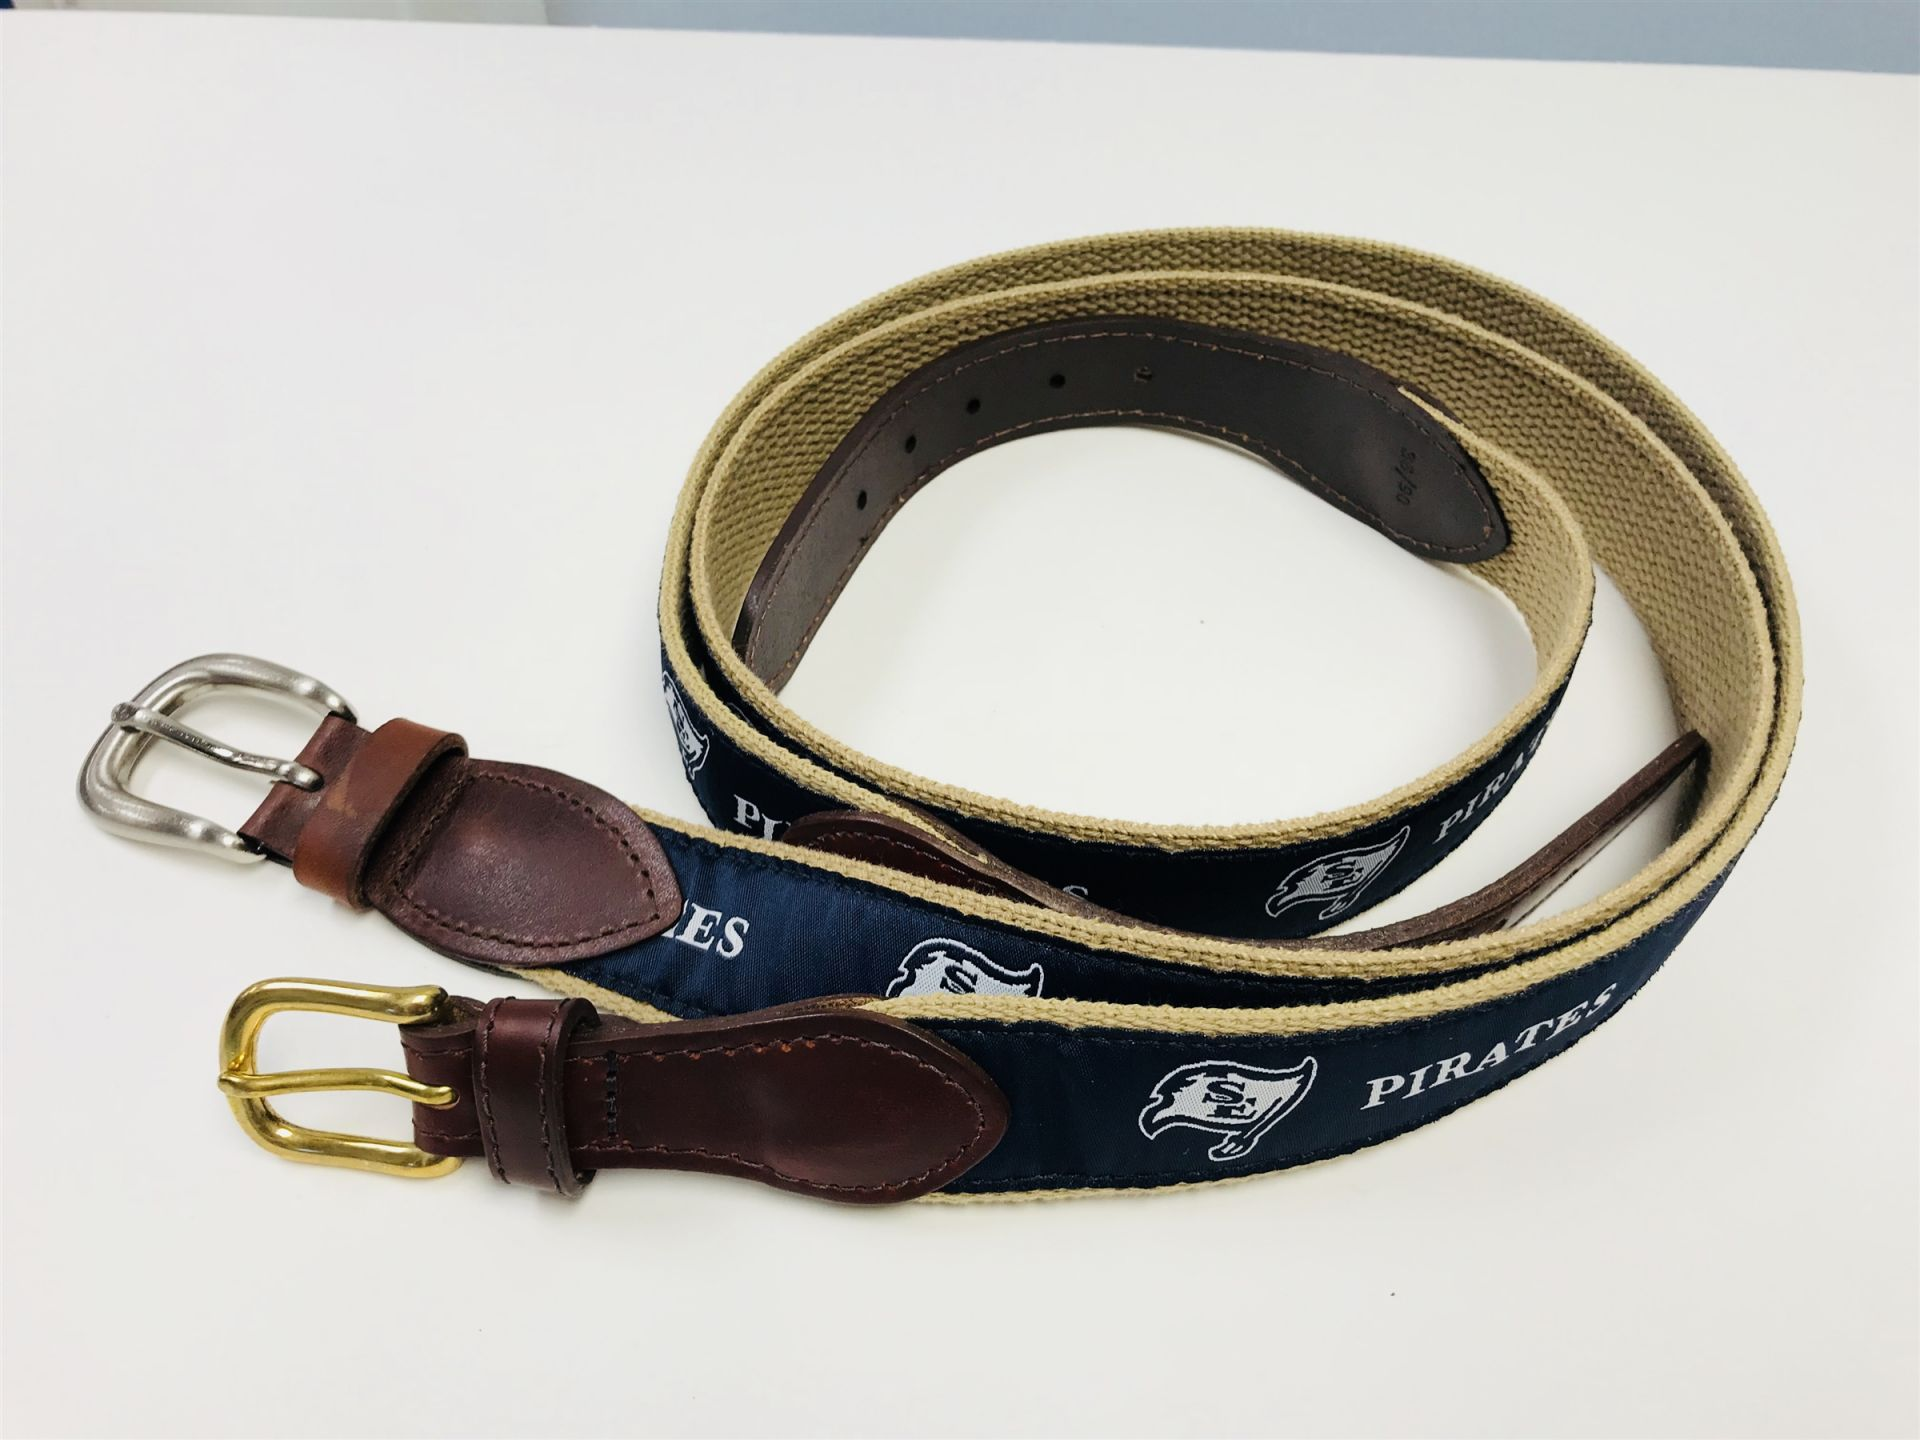 Beautifully made belts in sizes 20